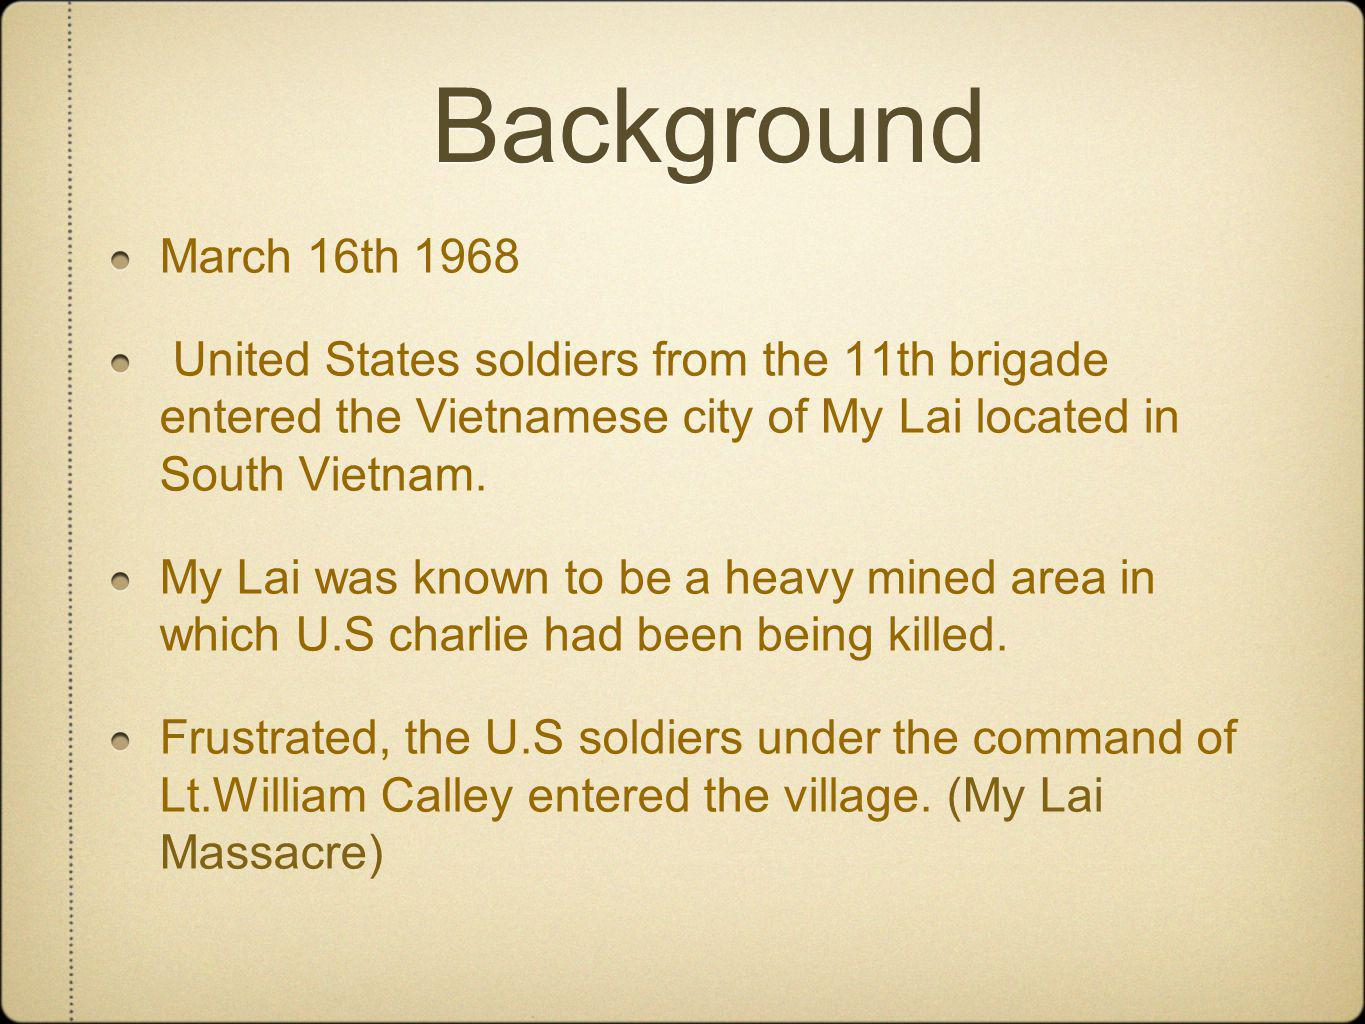 Background March 16th 1968. United States soldiers from the 11th brigade entered the Vietnamese city of My Lai located in South Vietnam.